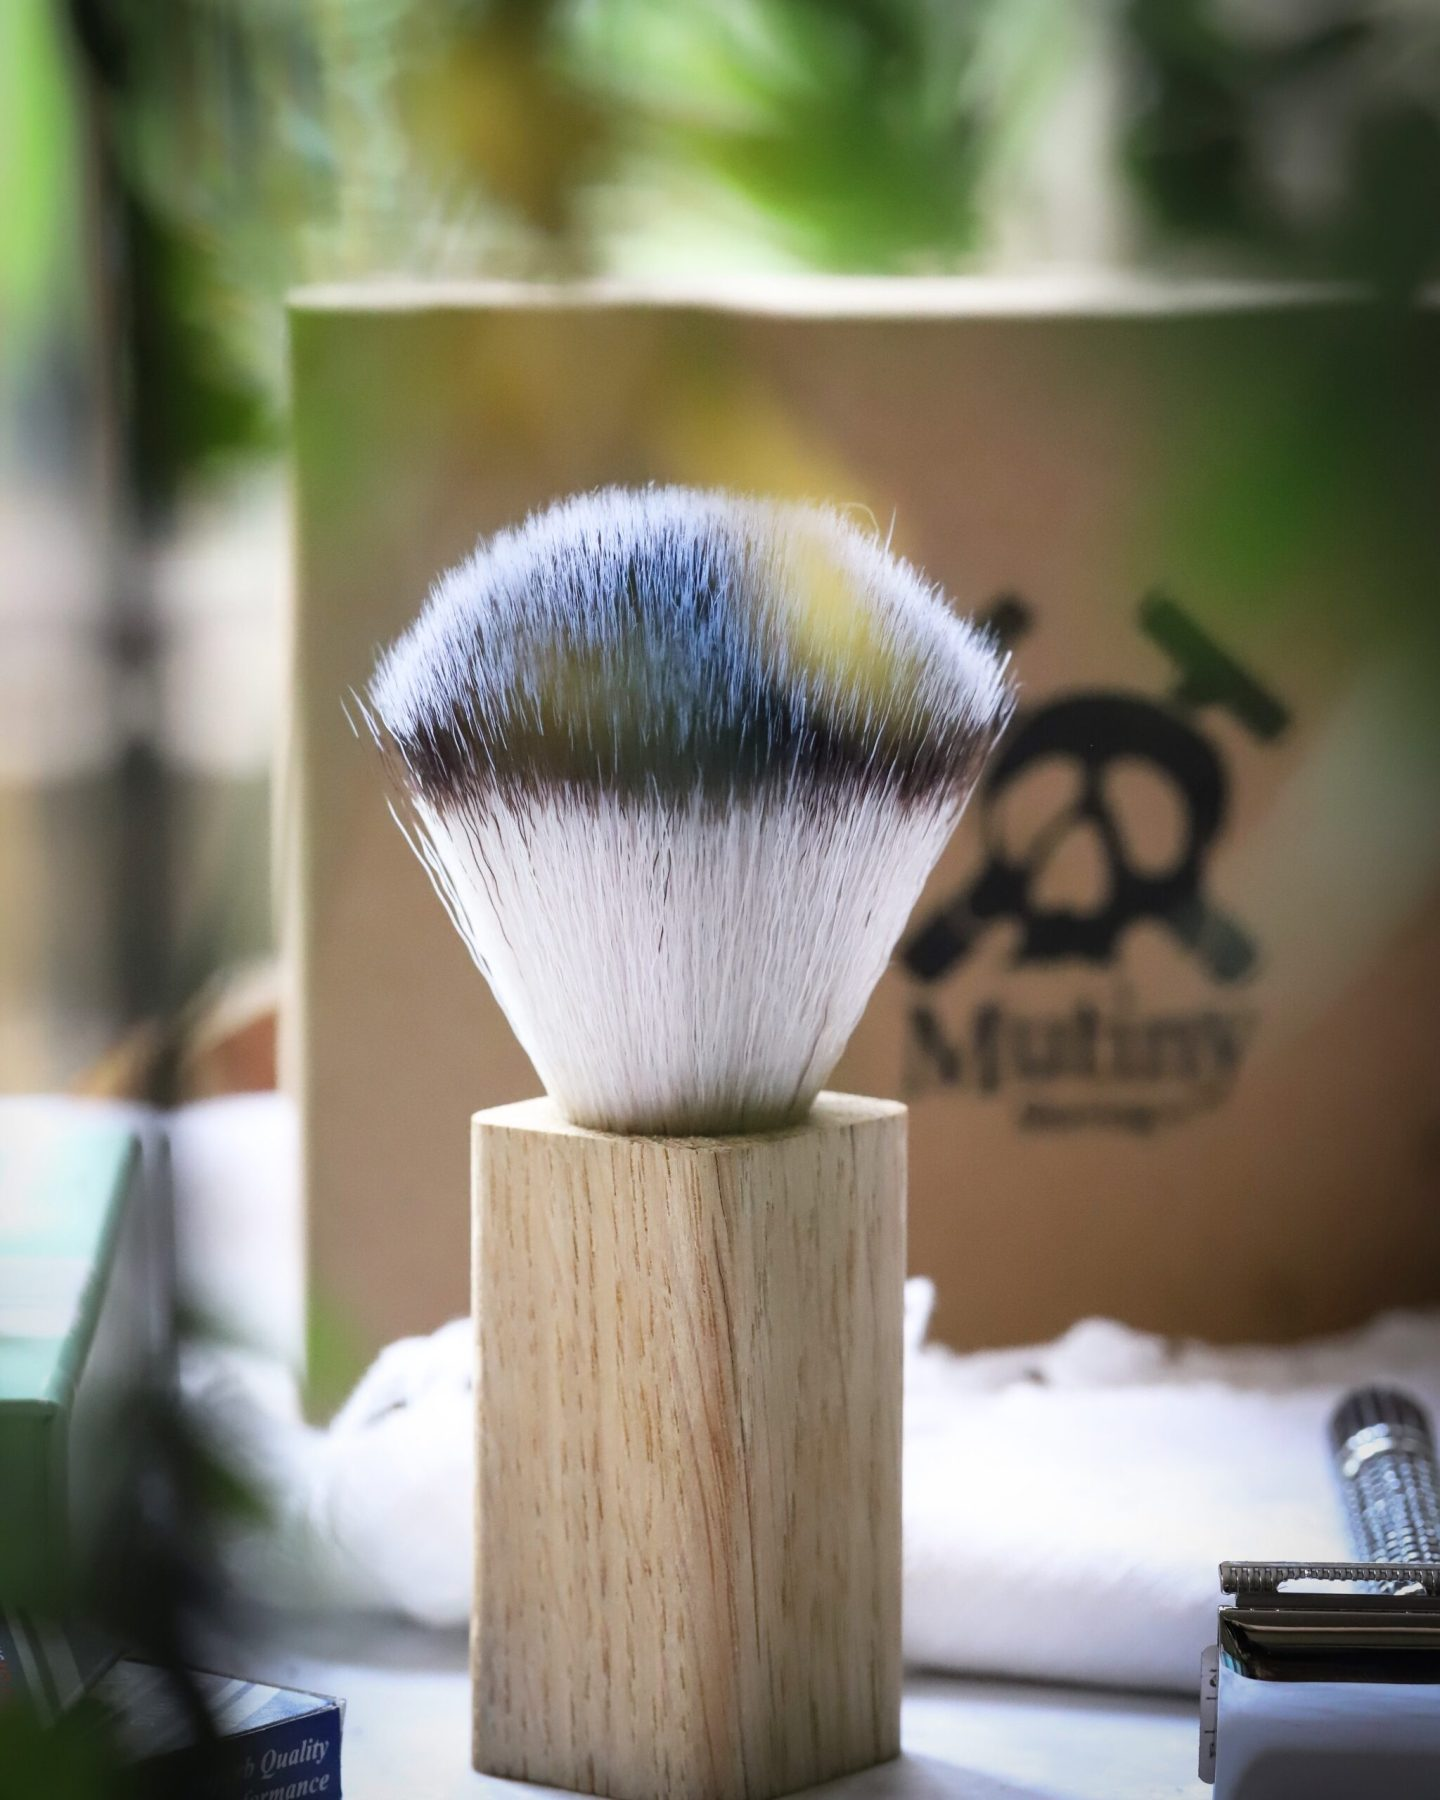 Mutiny shaving brush review (All You Need To Know, Plus How To Use Tips)